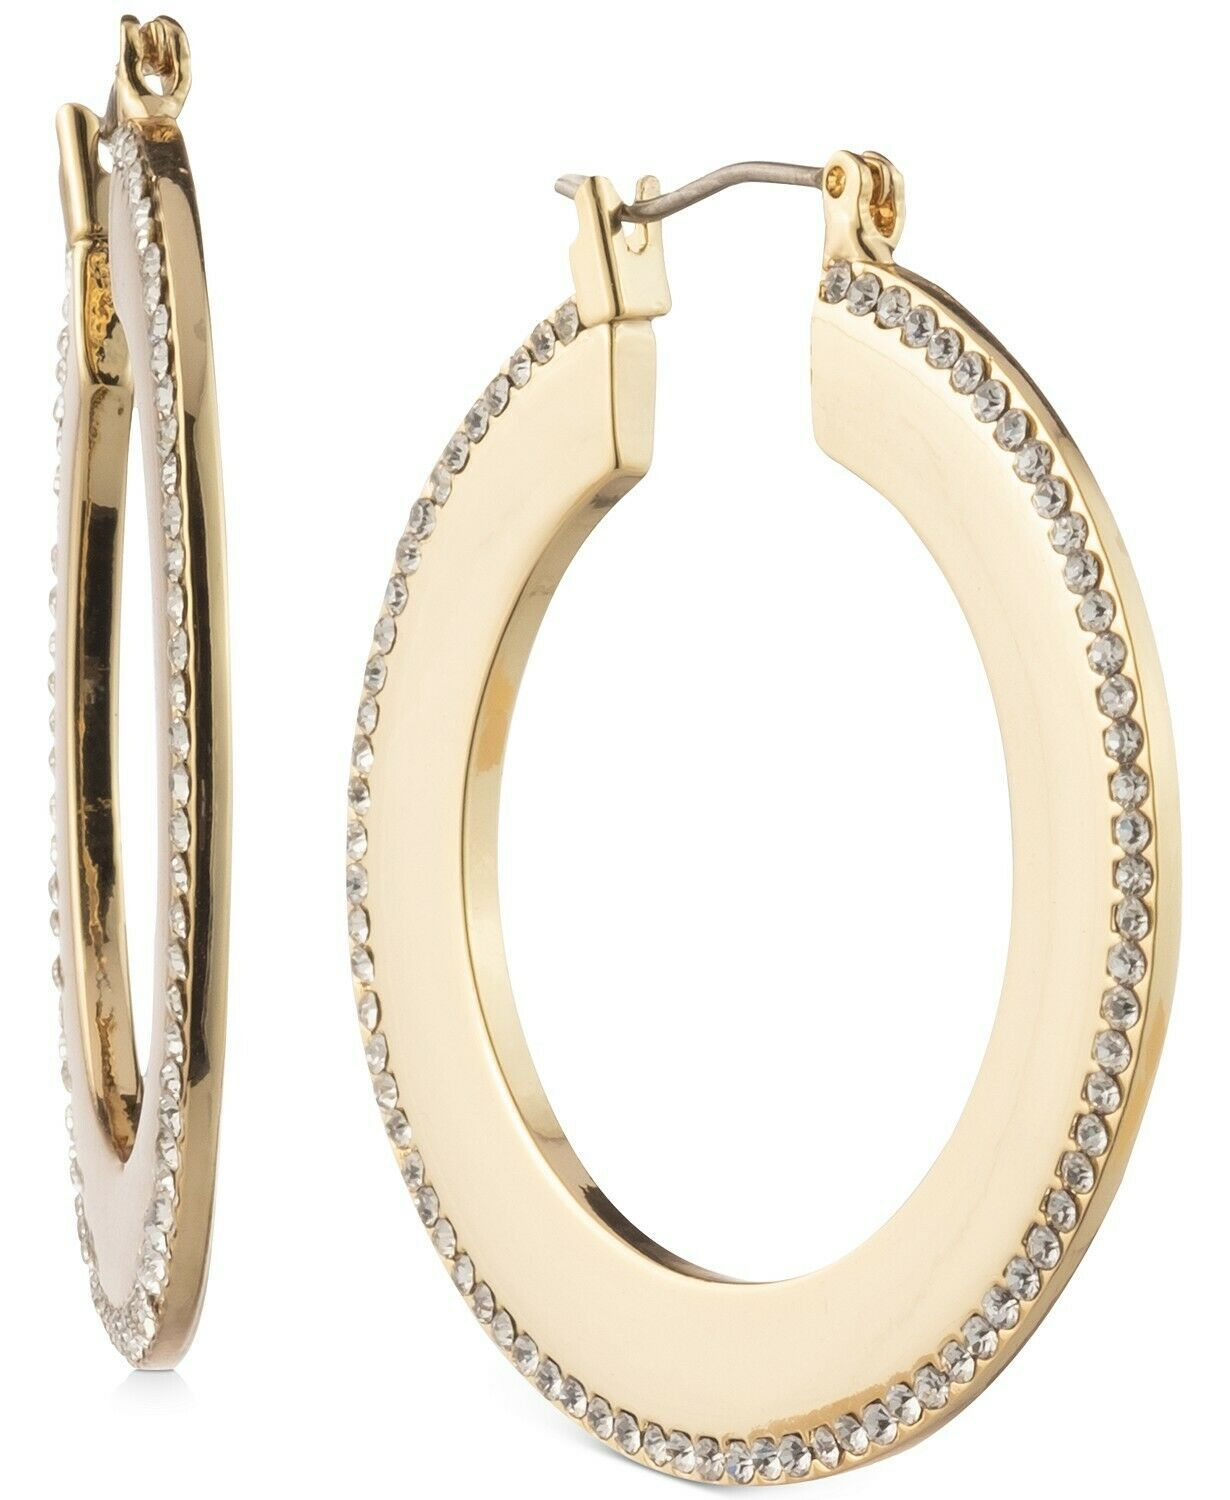 Primary image for DKNY Donna Karan Gold-Tone Medium Pavé Knife-Edge Crystal Hoop Earrings NEW